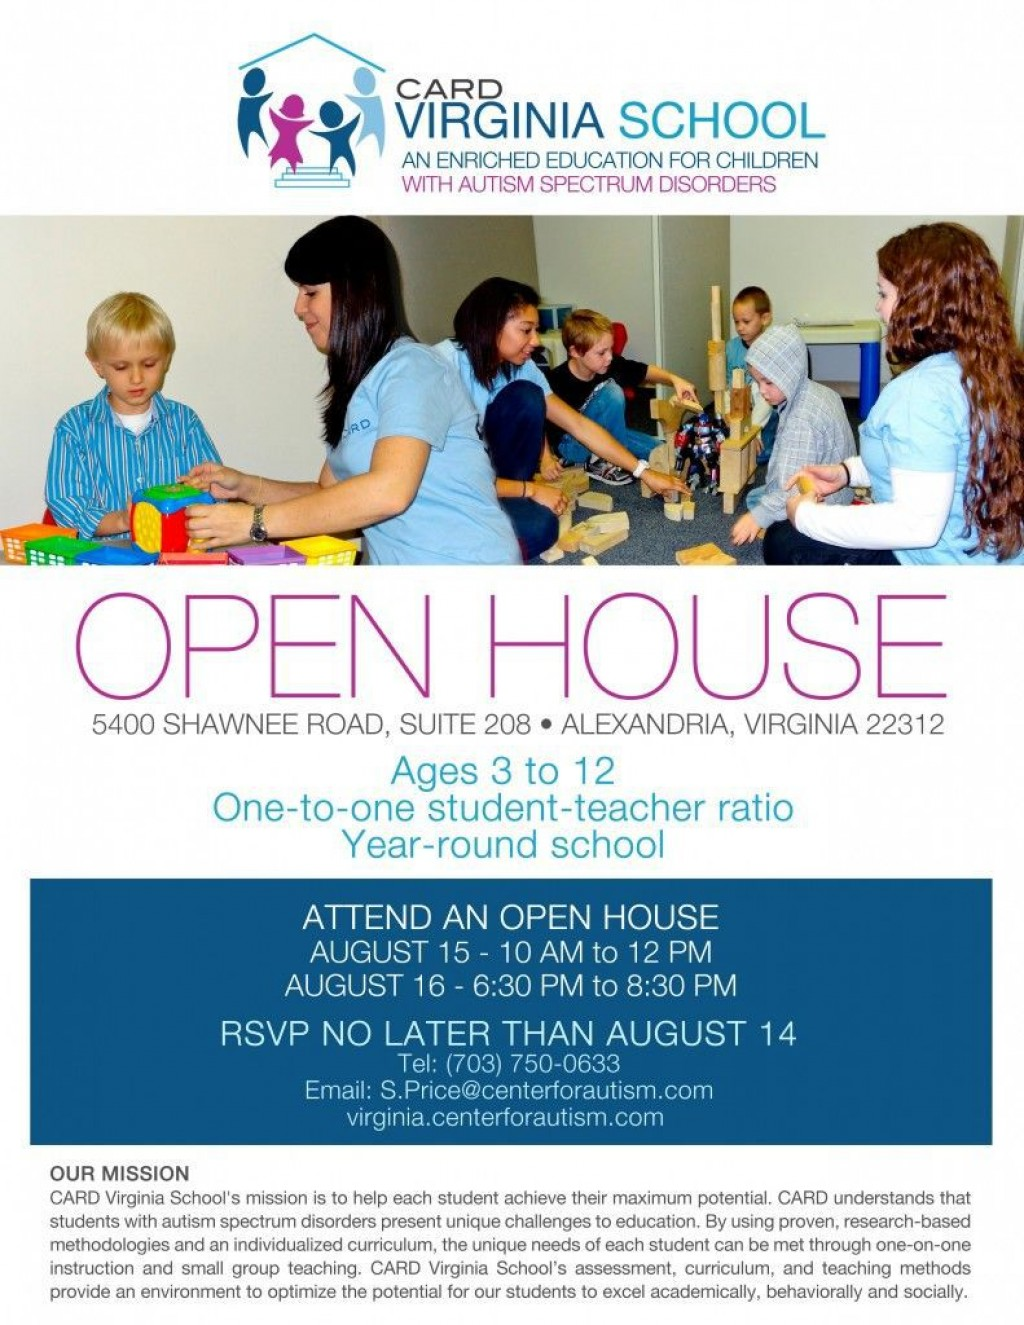 003 Surprising School Open House Flyer Template Image  Elementary Free WordLarge